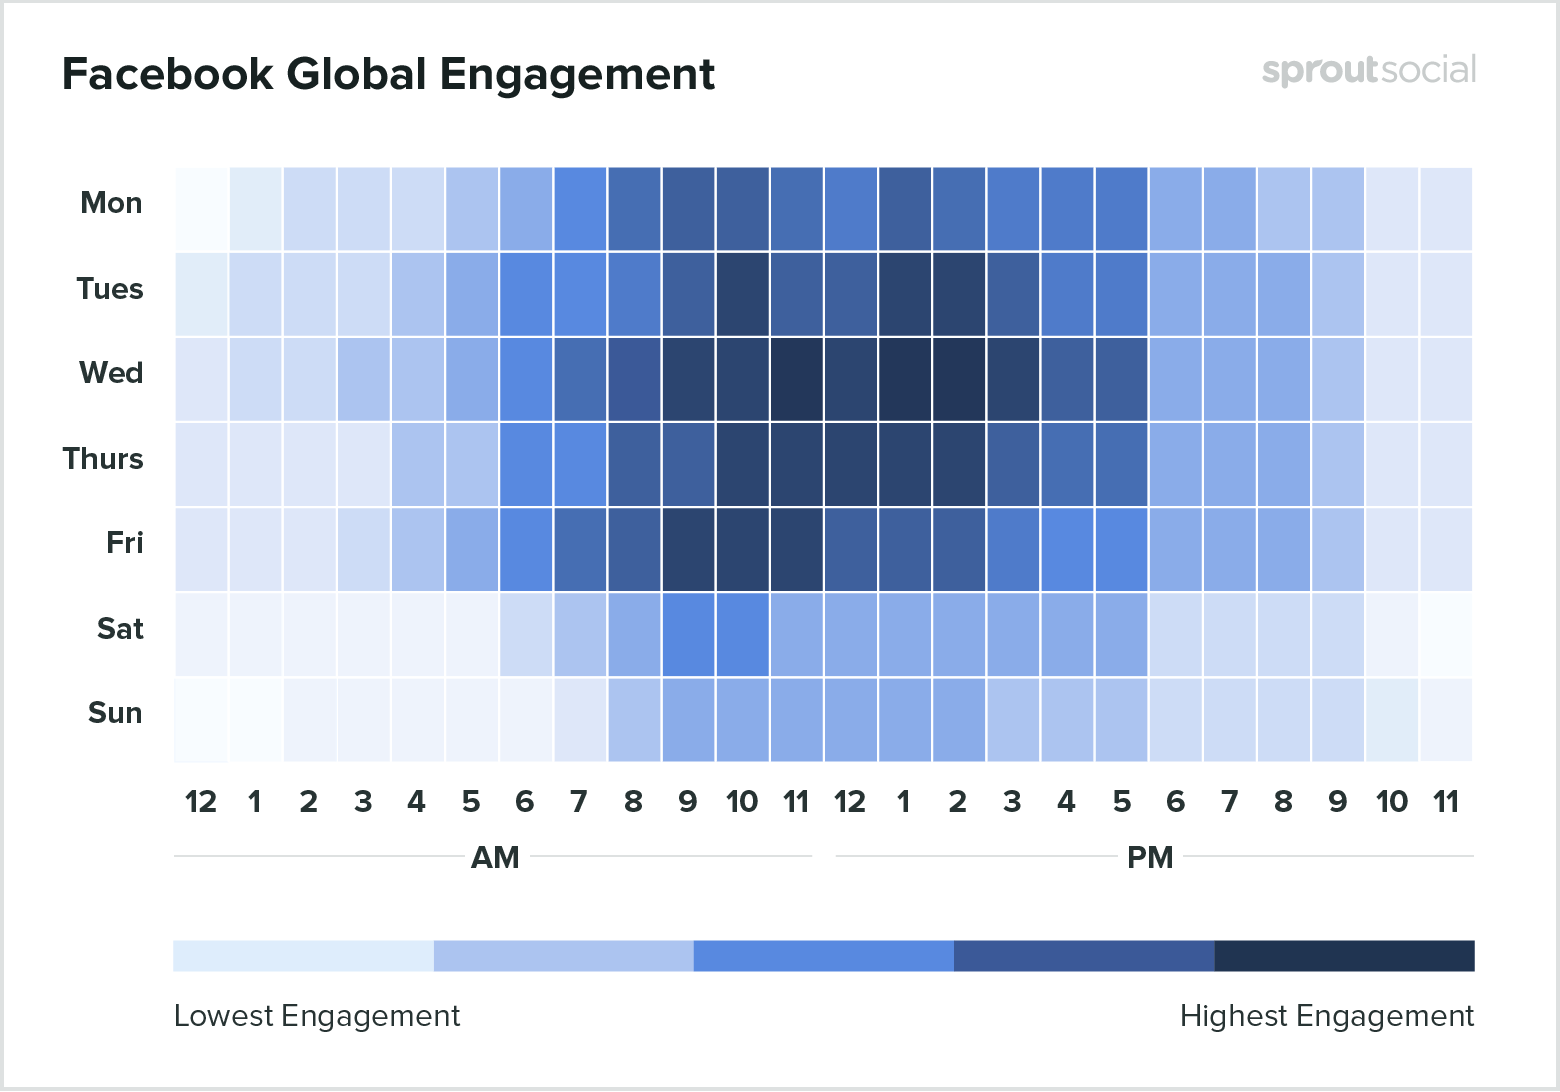 btp-2020-facebook-heatmap-global.png